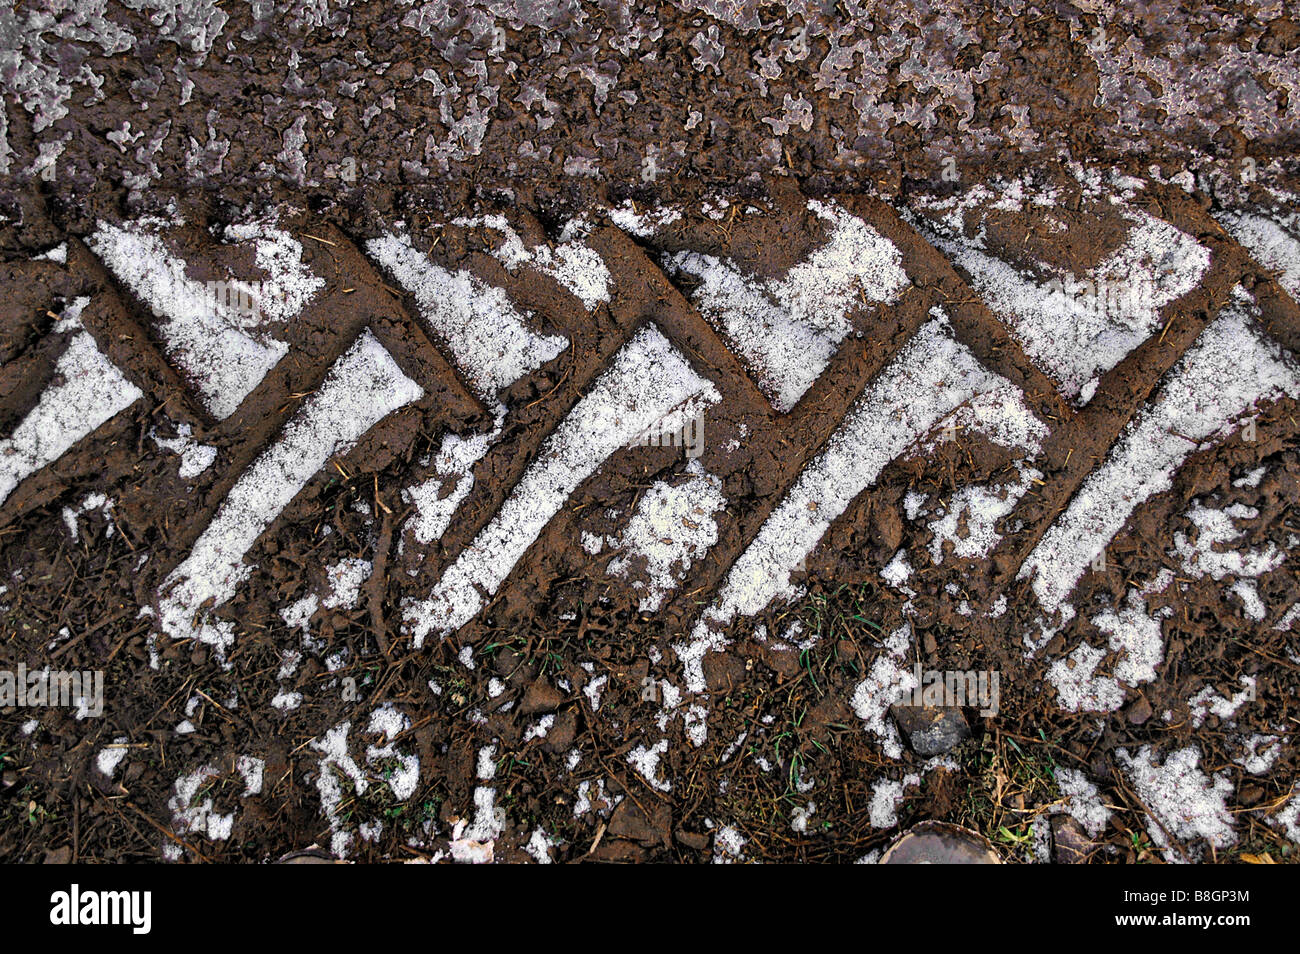 Shallow snow lies on tractor wheel prints in soil. - Stock Image